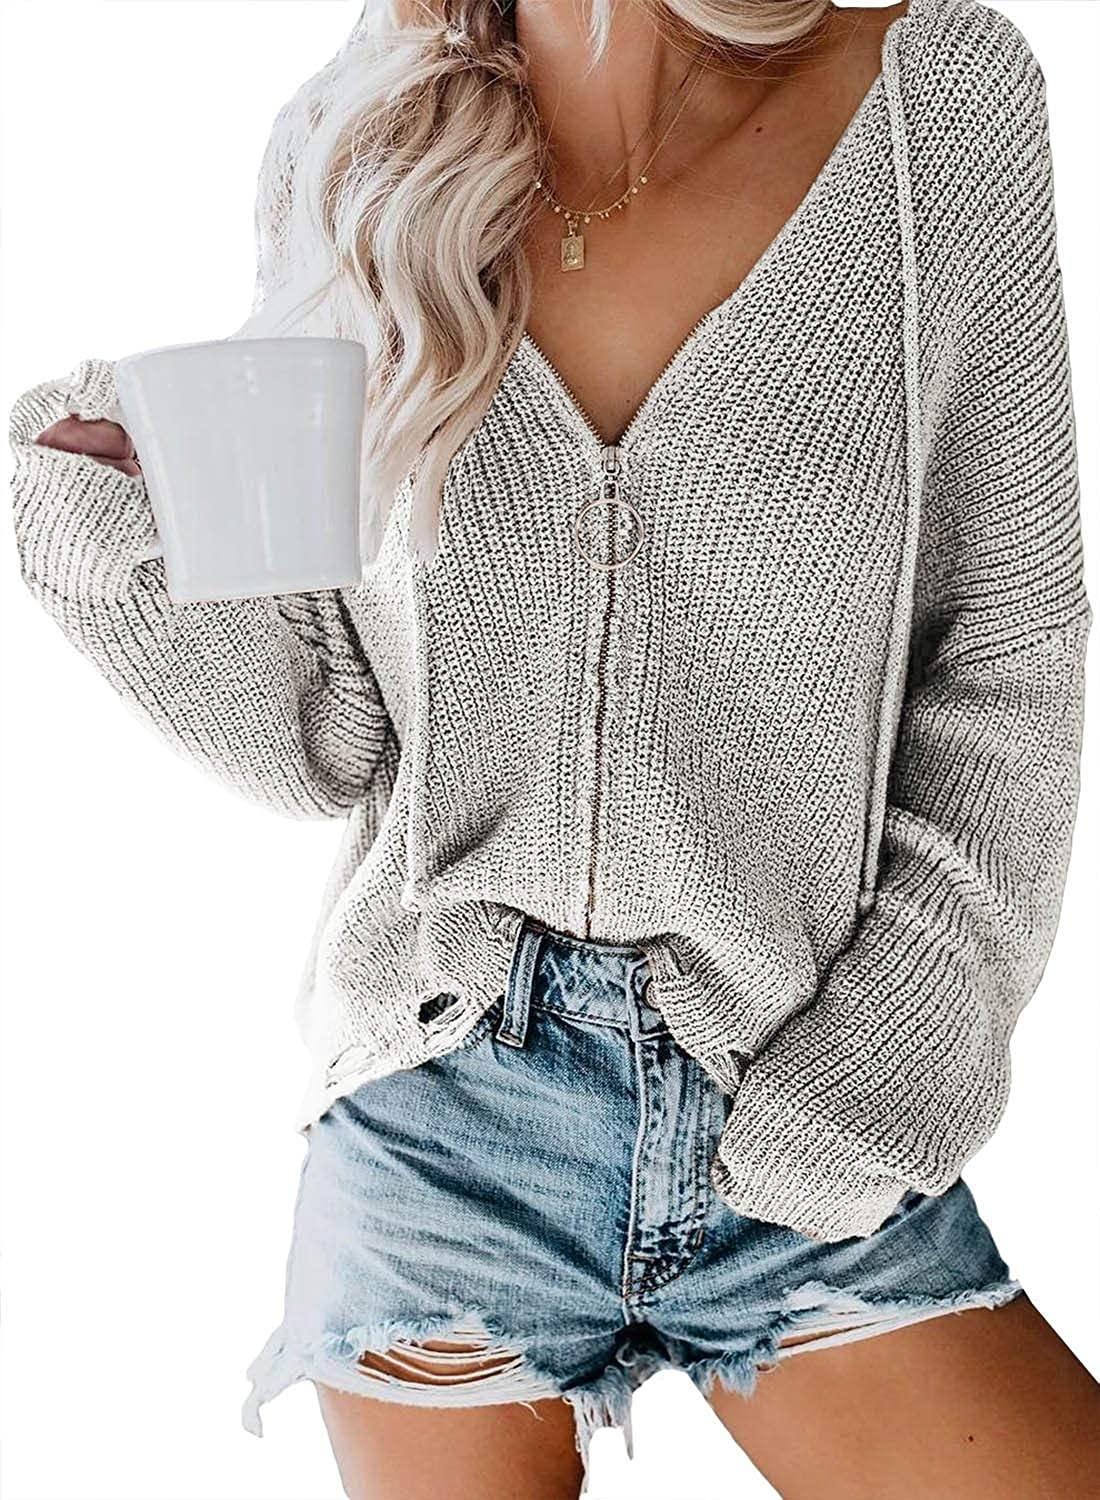 Paitluc Women Hooded Cardigan Sweater Slouchy Knit Jacket Zip Up Lightweight Cute Knitted Coat